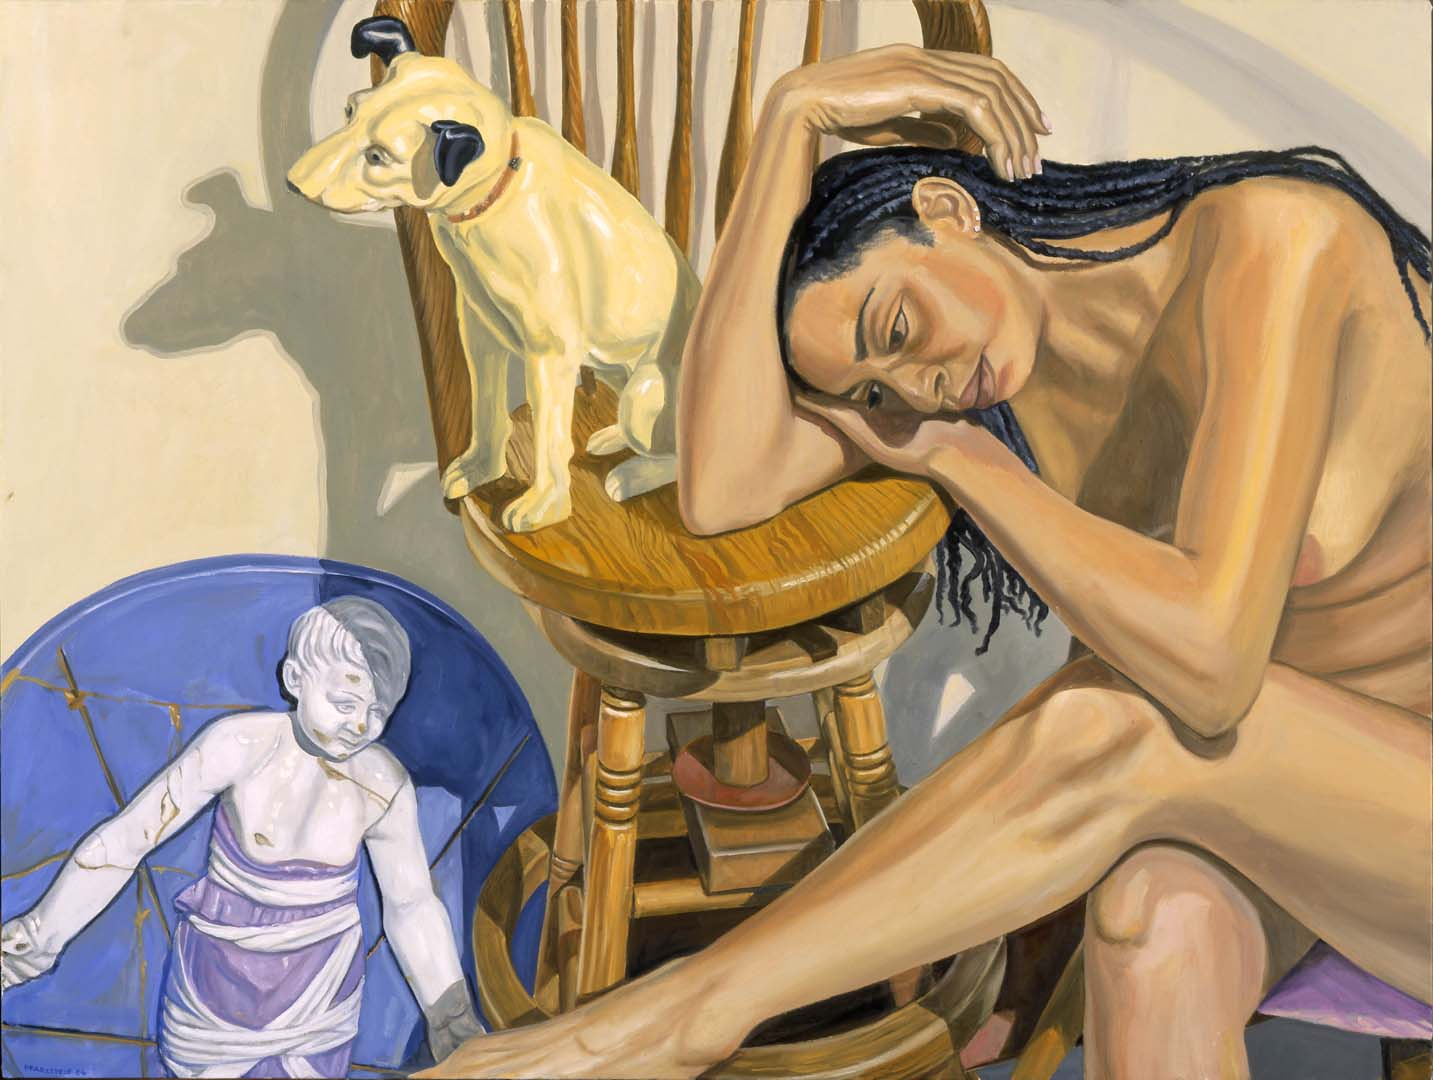 2006 Model with HMV Dog and Rennaissance Bambino Oil on Canvas 36 x 48